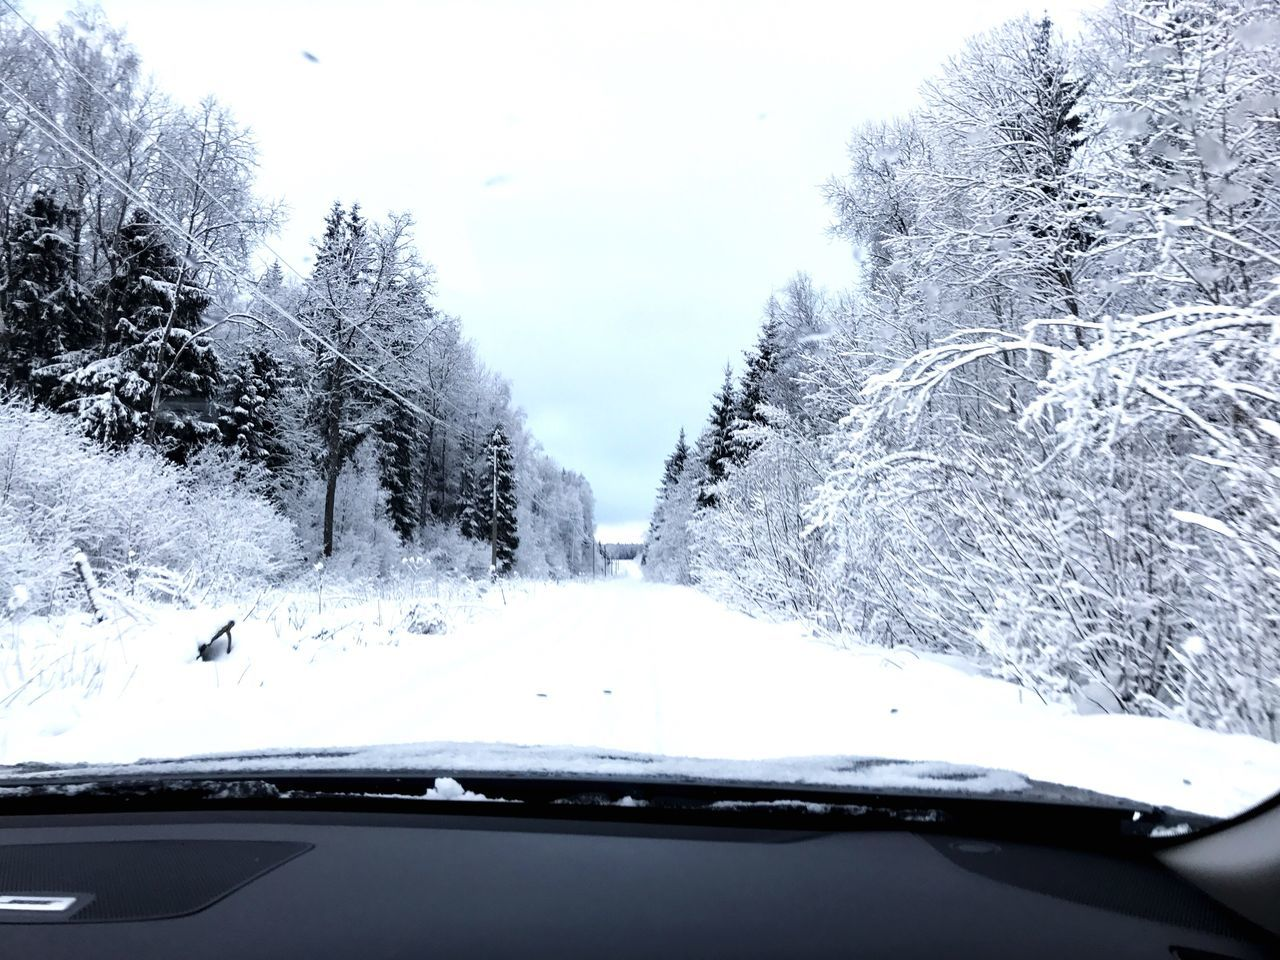 snow, cold temperature, winter, car, transportation, windshield, weather, mode of transport, land vehicle, nature, car interior, car point of view, white color, no people, cold, frozen, day, beauty in nature, tree, road trip, scenics, landscape, outdoors, sky, close-up